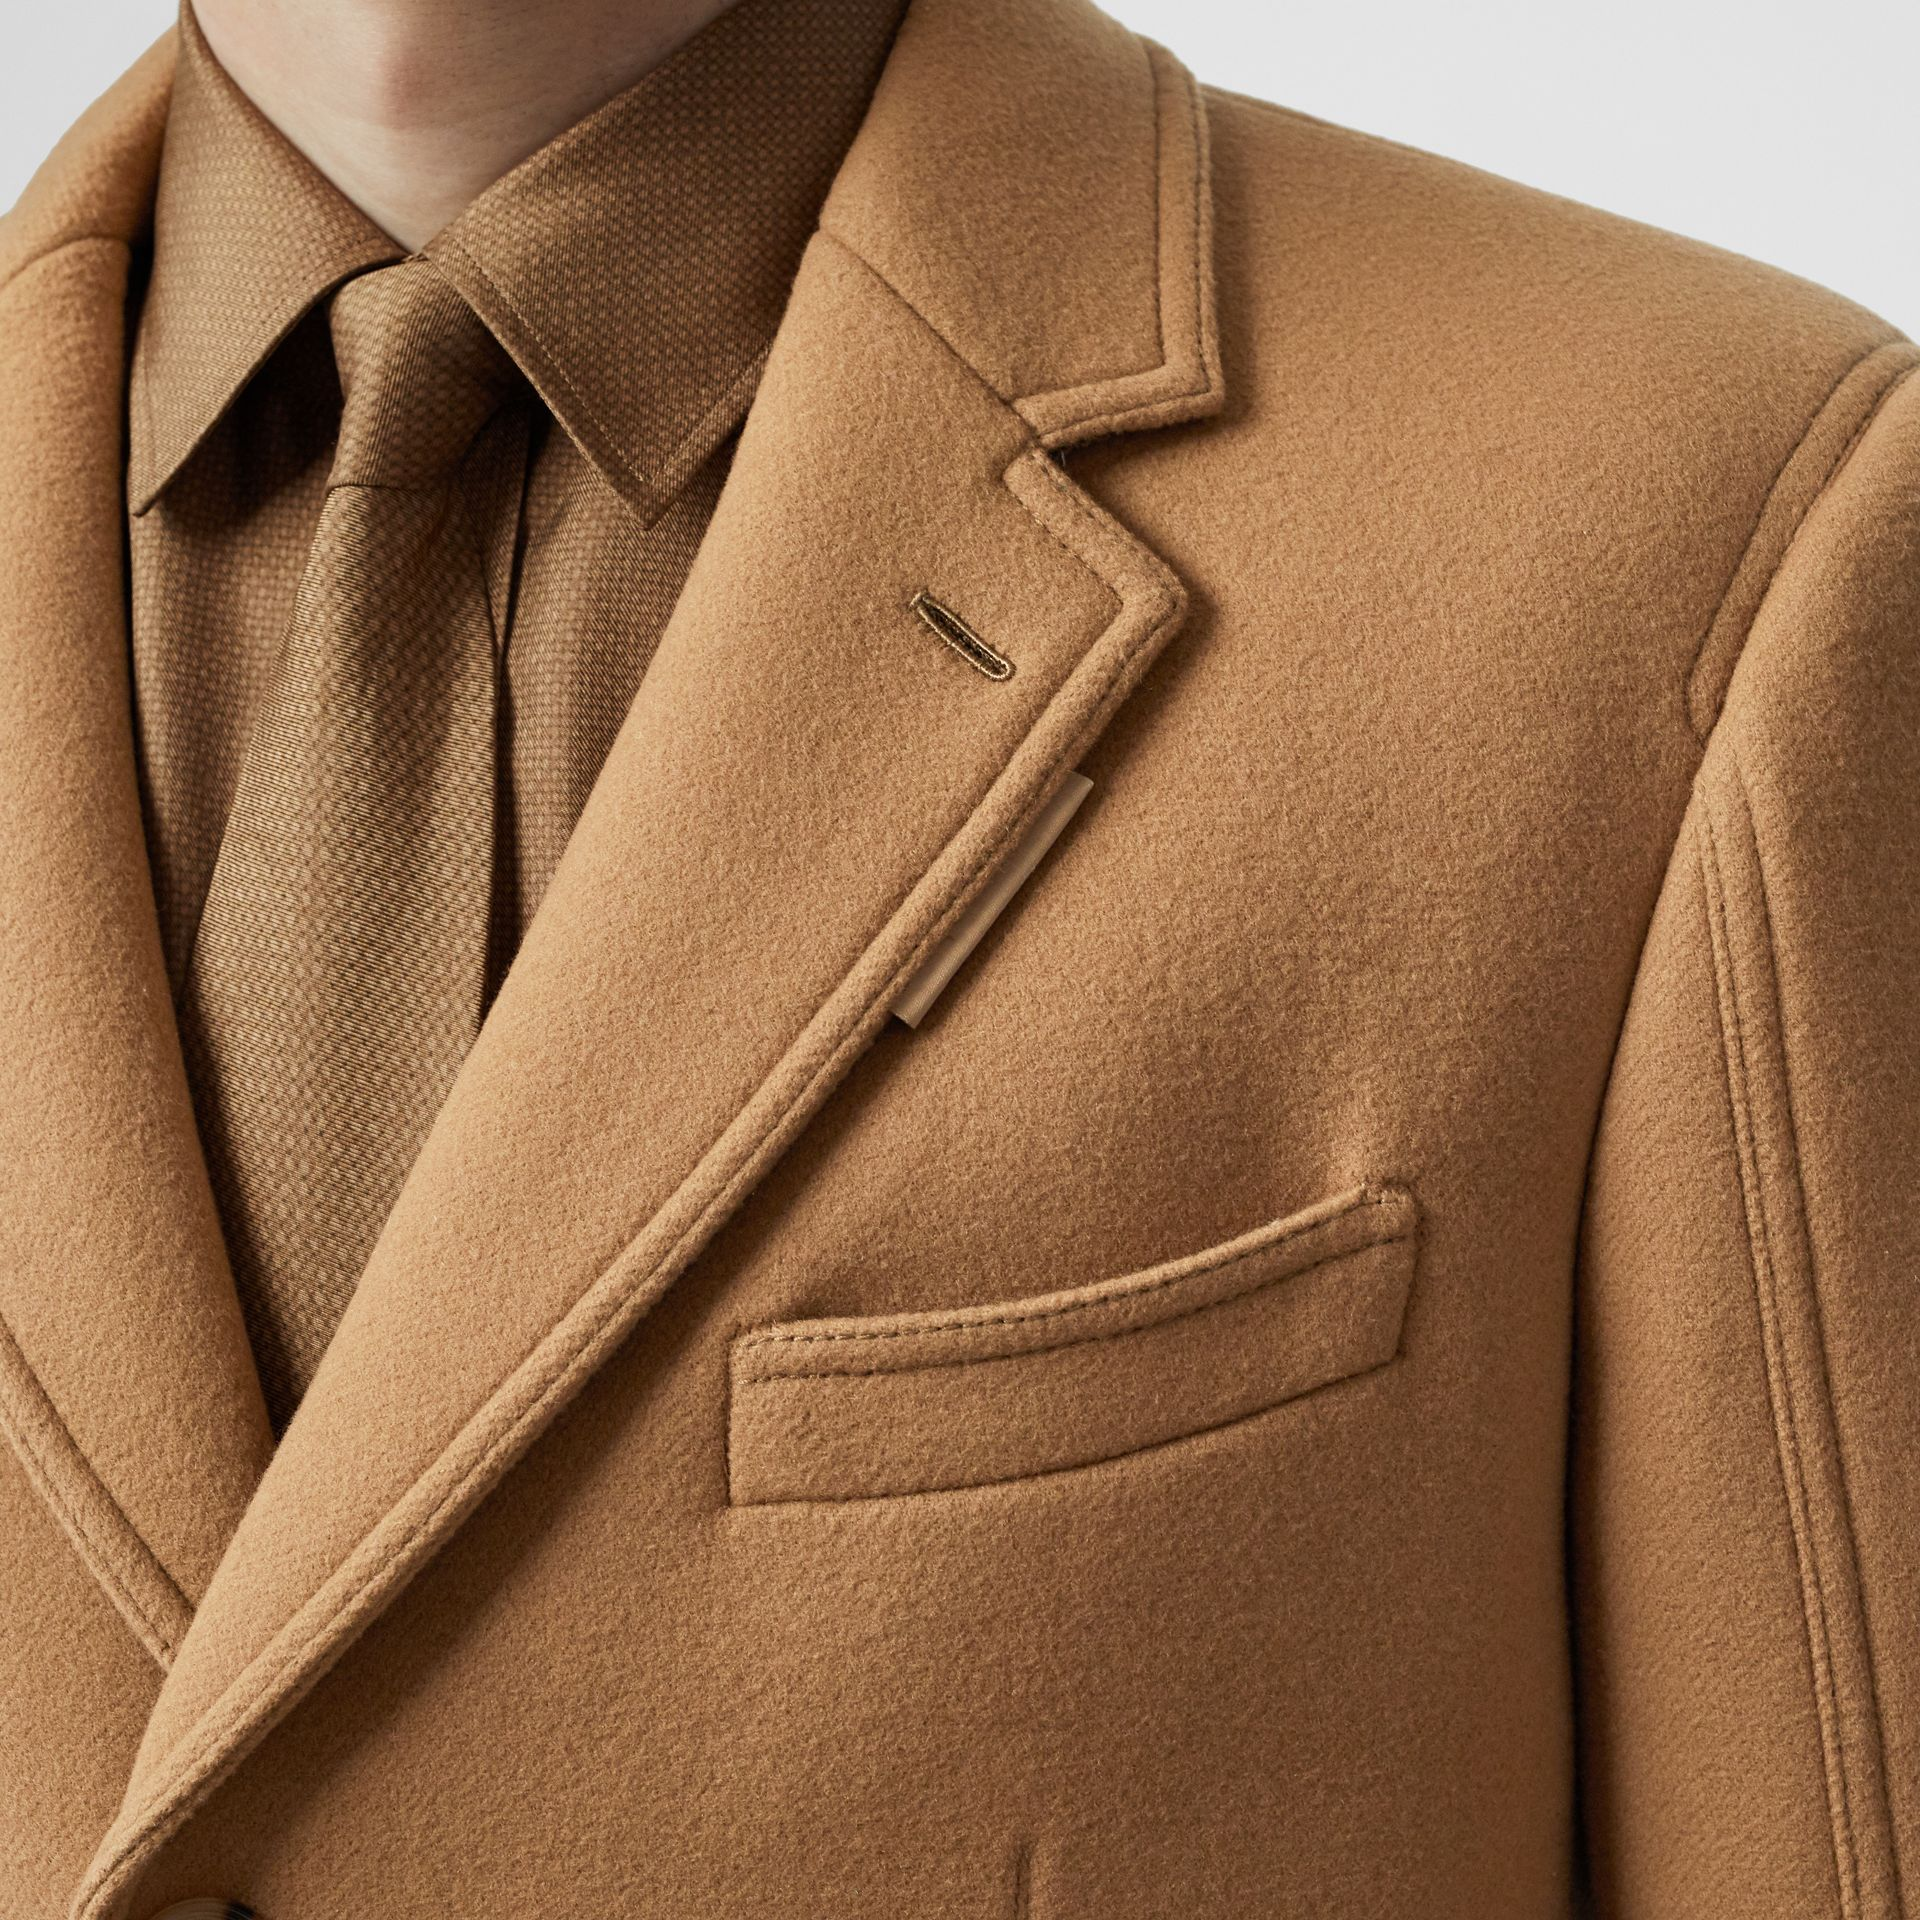 Zip Detail Wool Tailored Coat in Warm Camel - Men | Burberry Singapore - gallery image 4